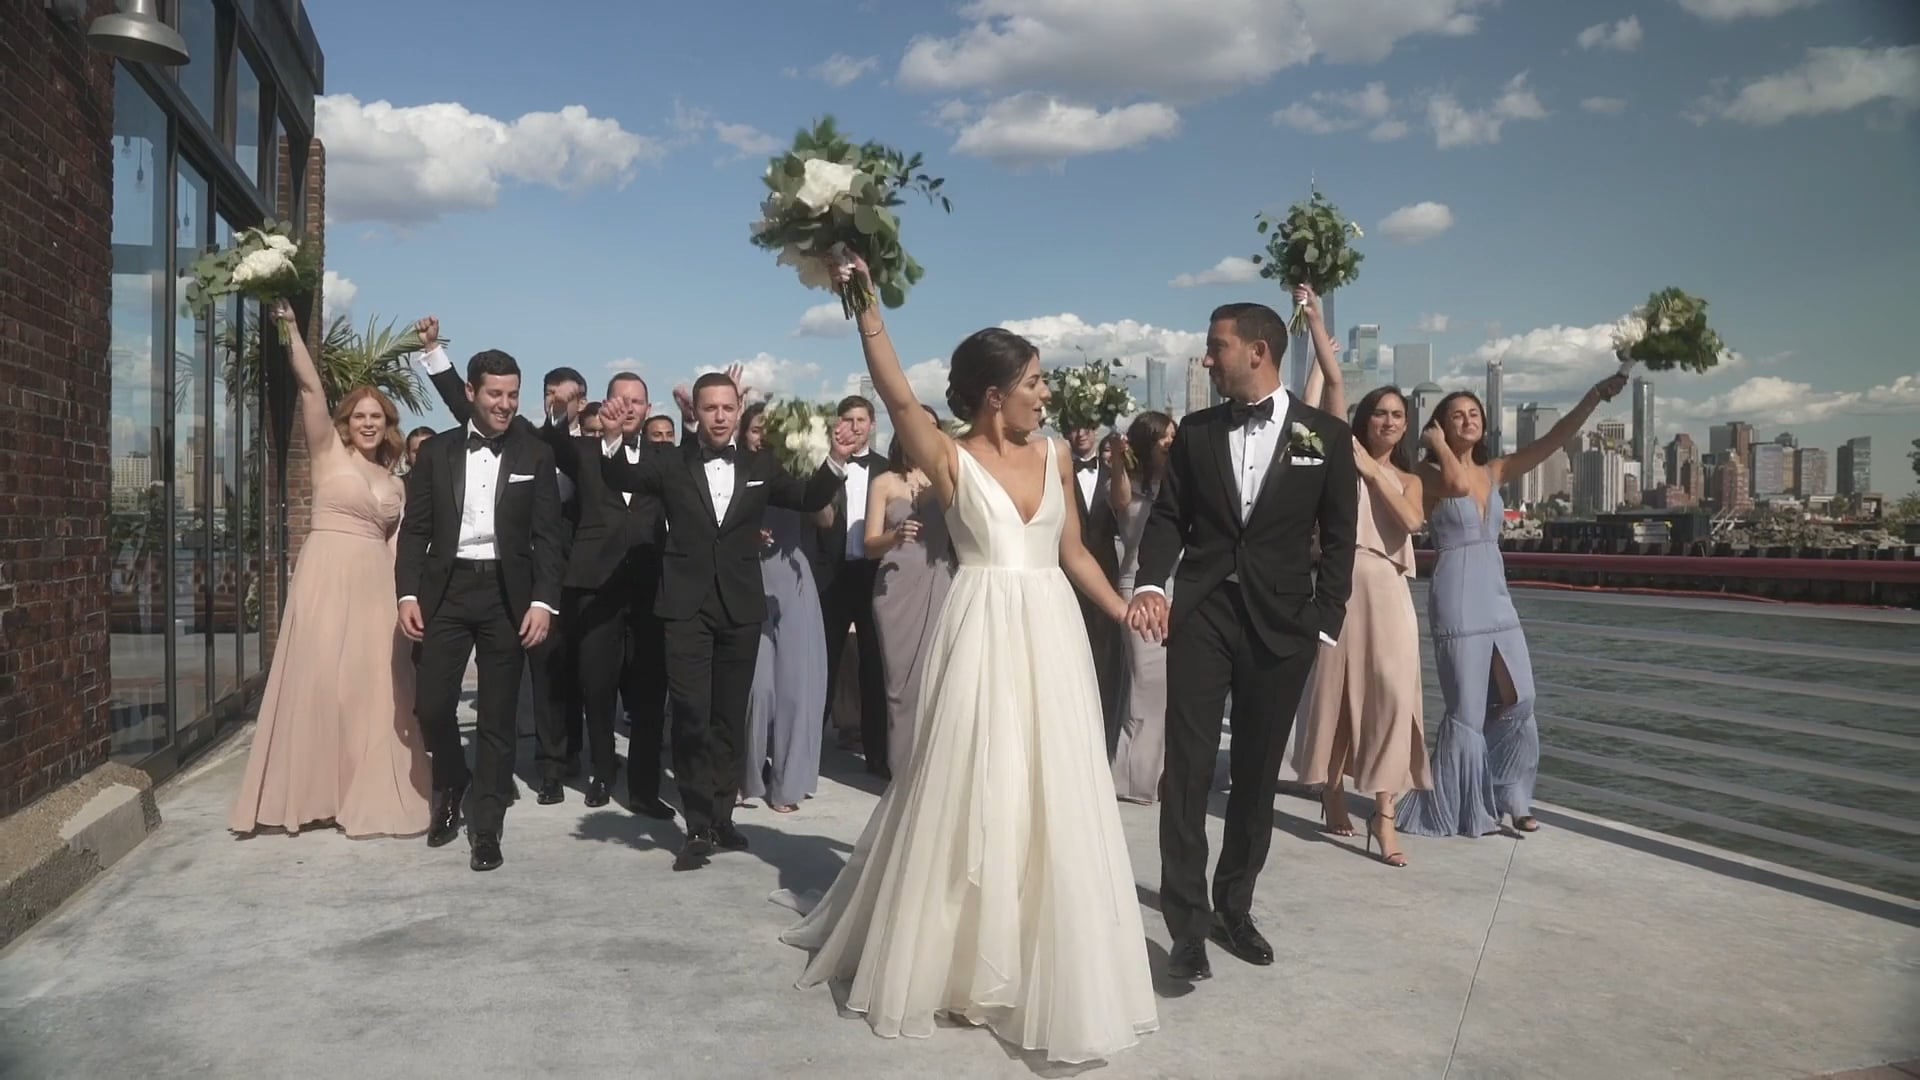 Amy & Zach | Instagram Highlight 2 | Love, Laughter & Endless Dancing on the Great Hudson River